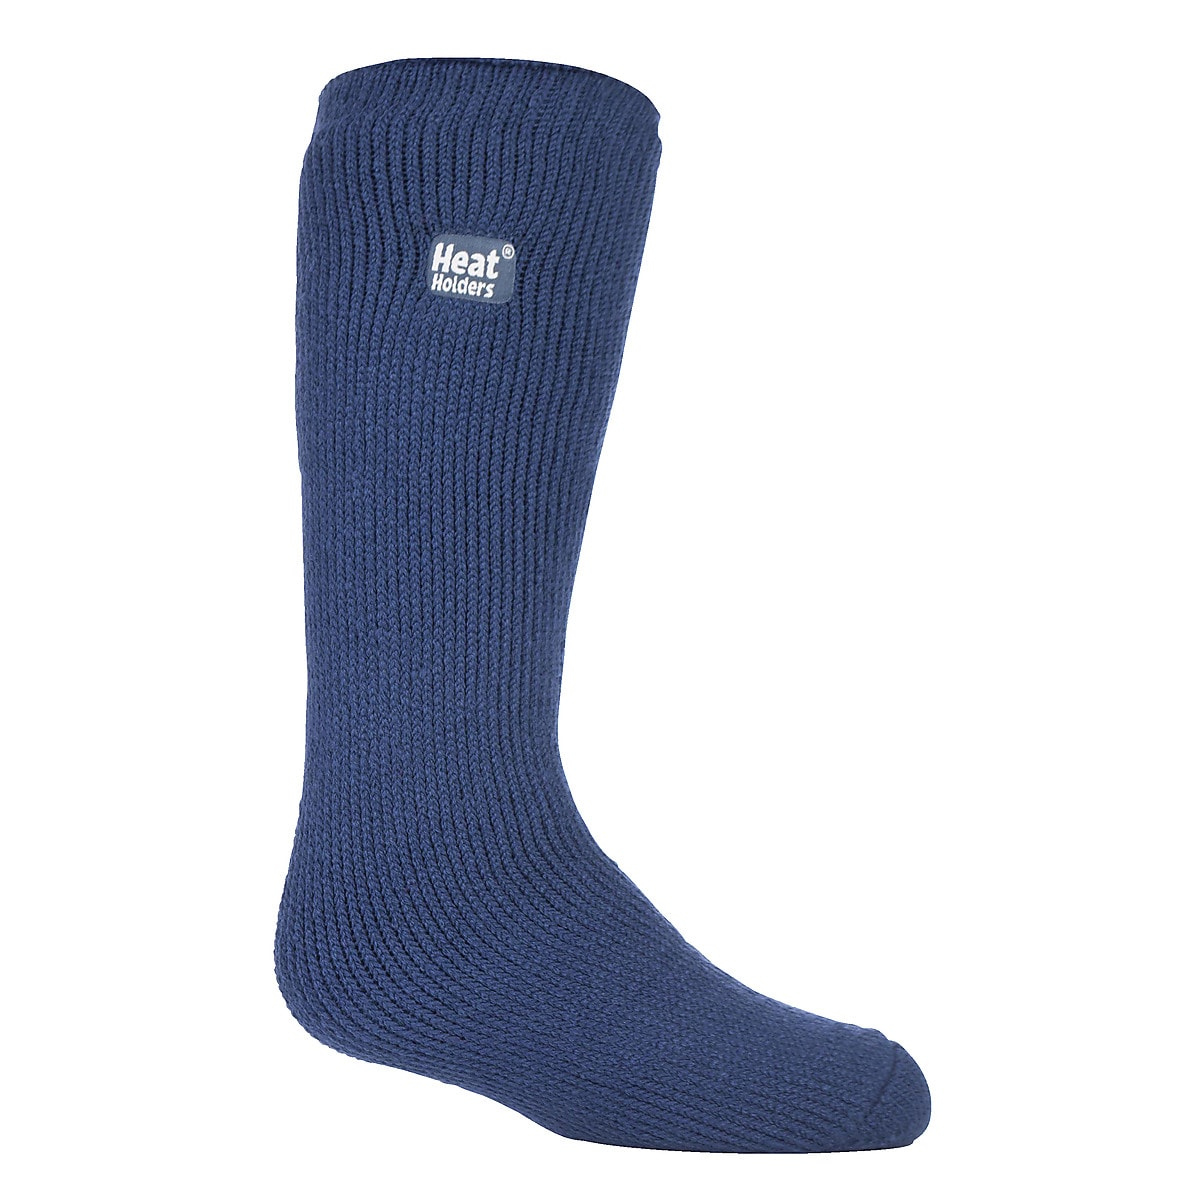 Heat Holders Thermal Socks, size 27-33